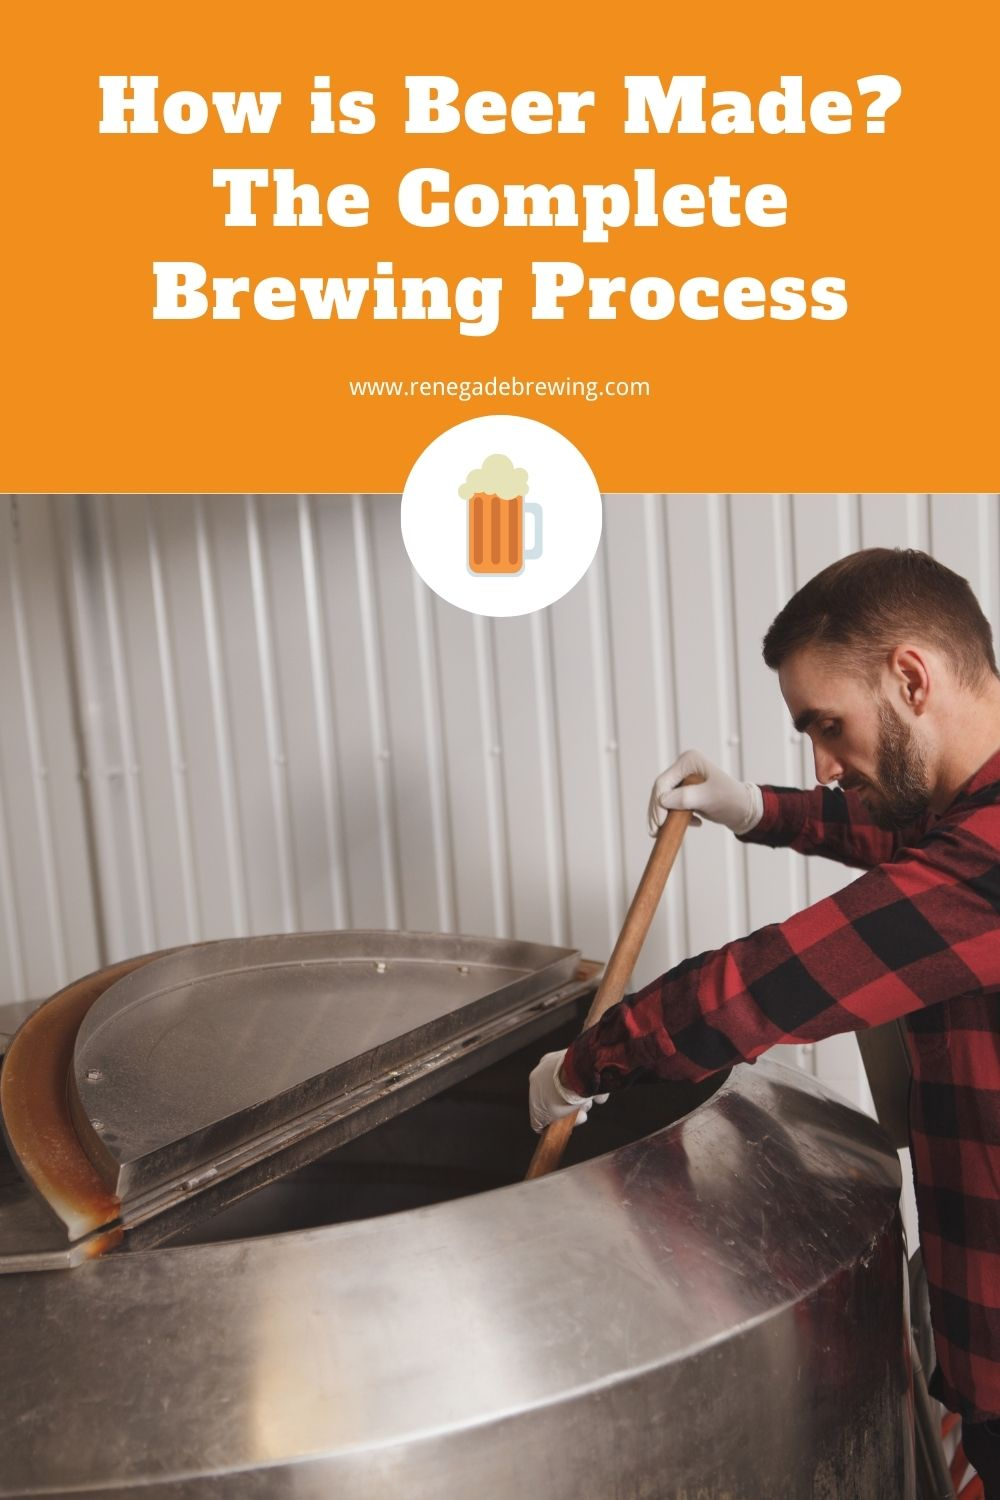 How is Beer Made? The Complete Brewing Process